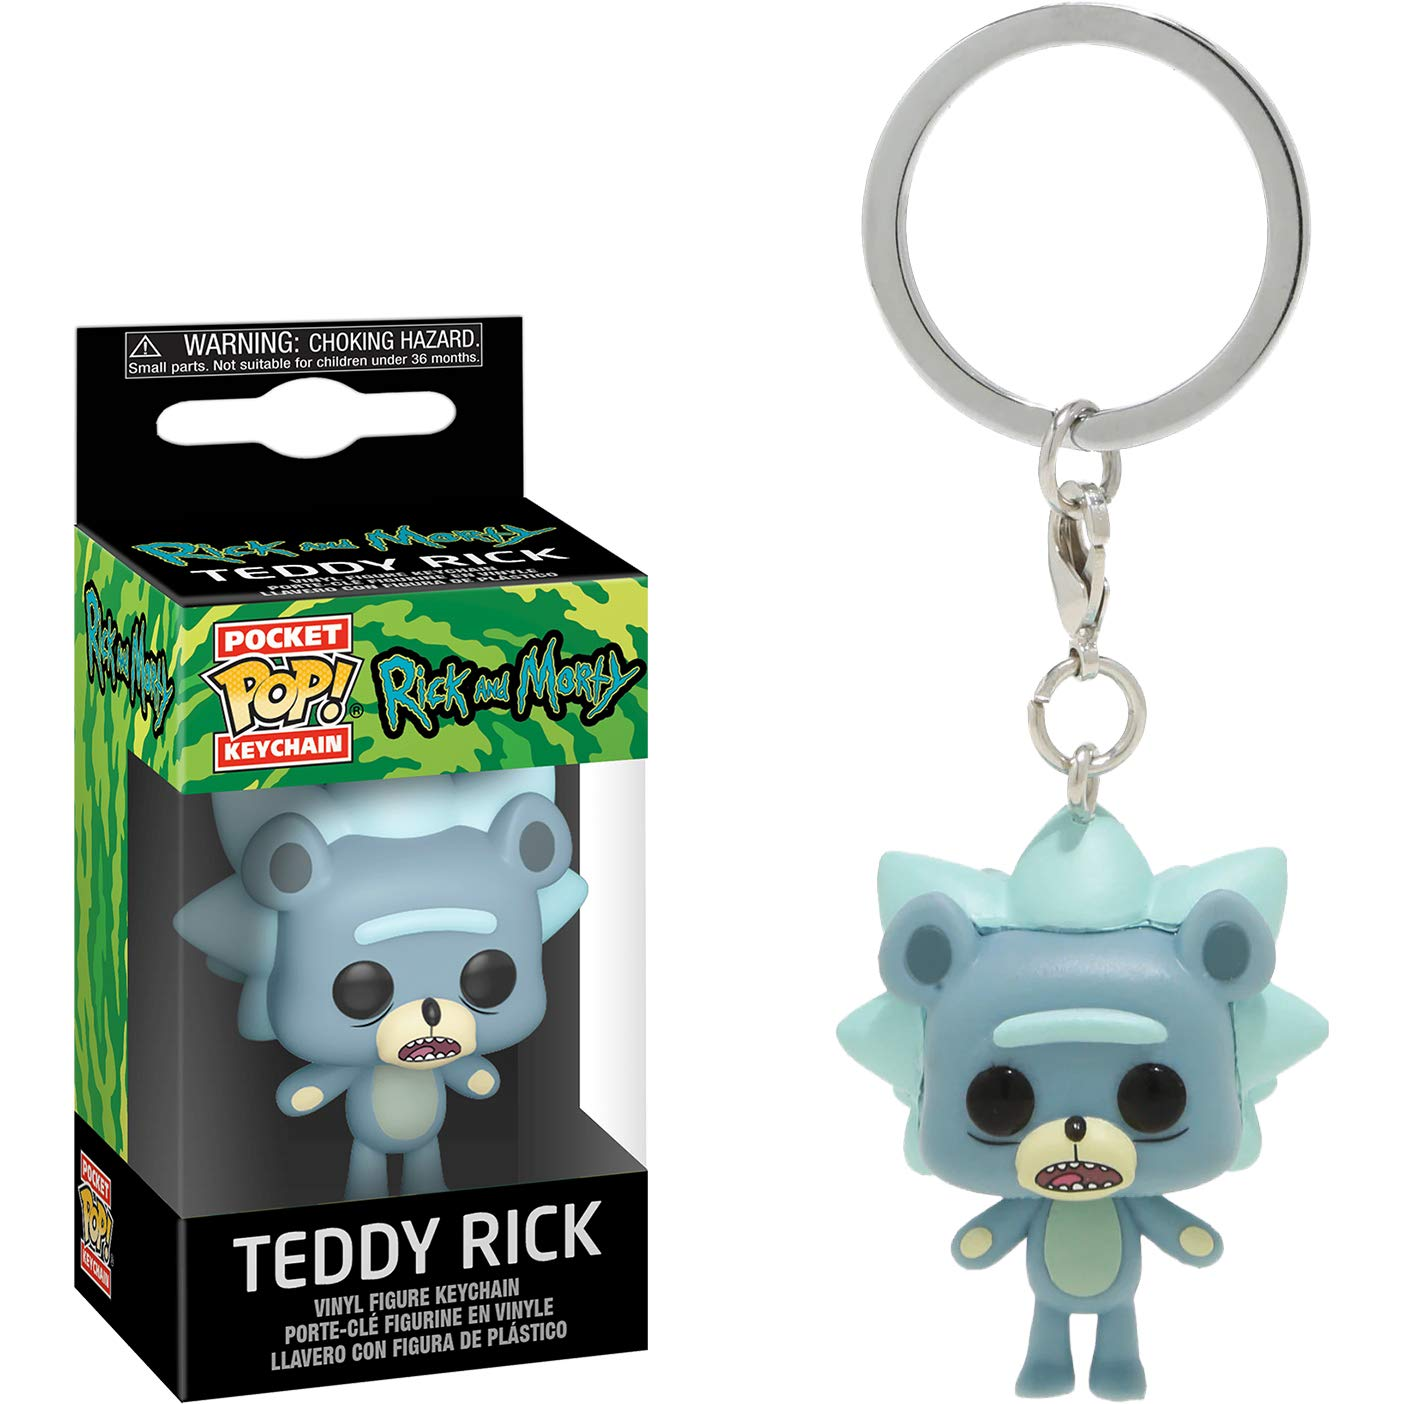 Amazon.com: Teddy Rick: Fun ko Pocket Pop! Mini-Figural ...